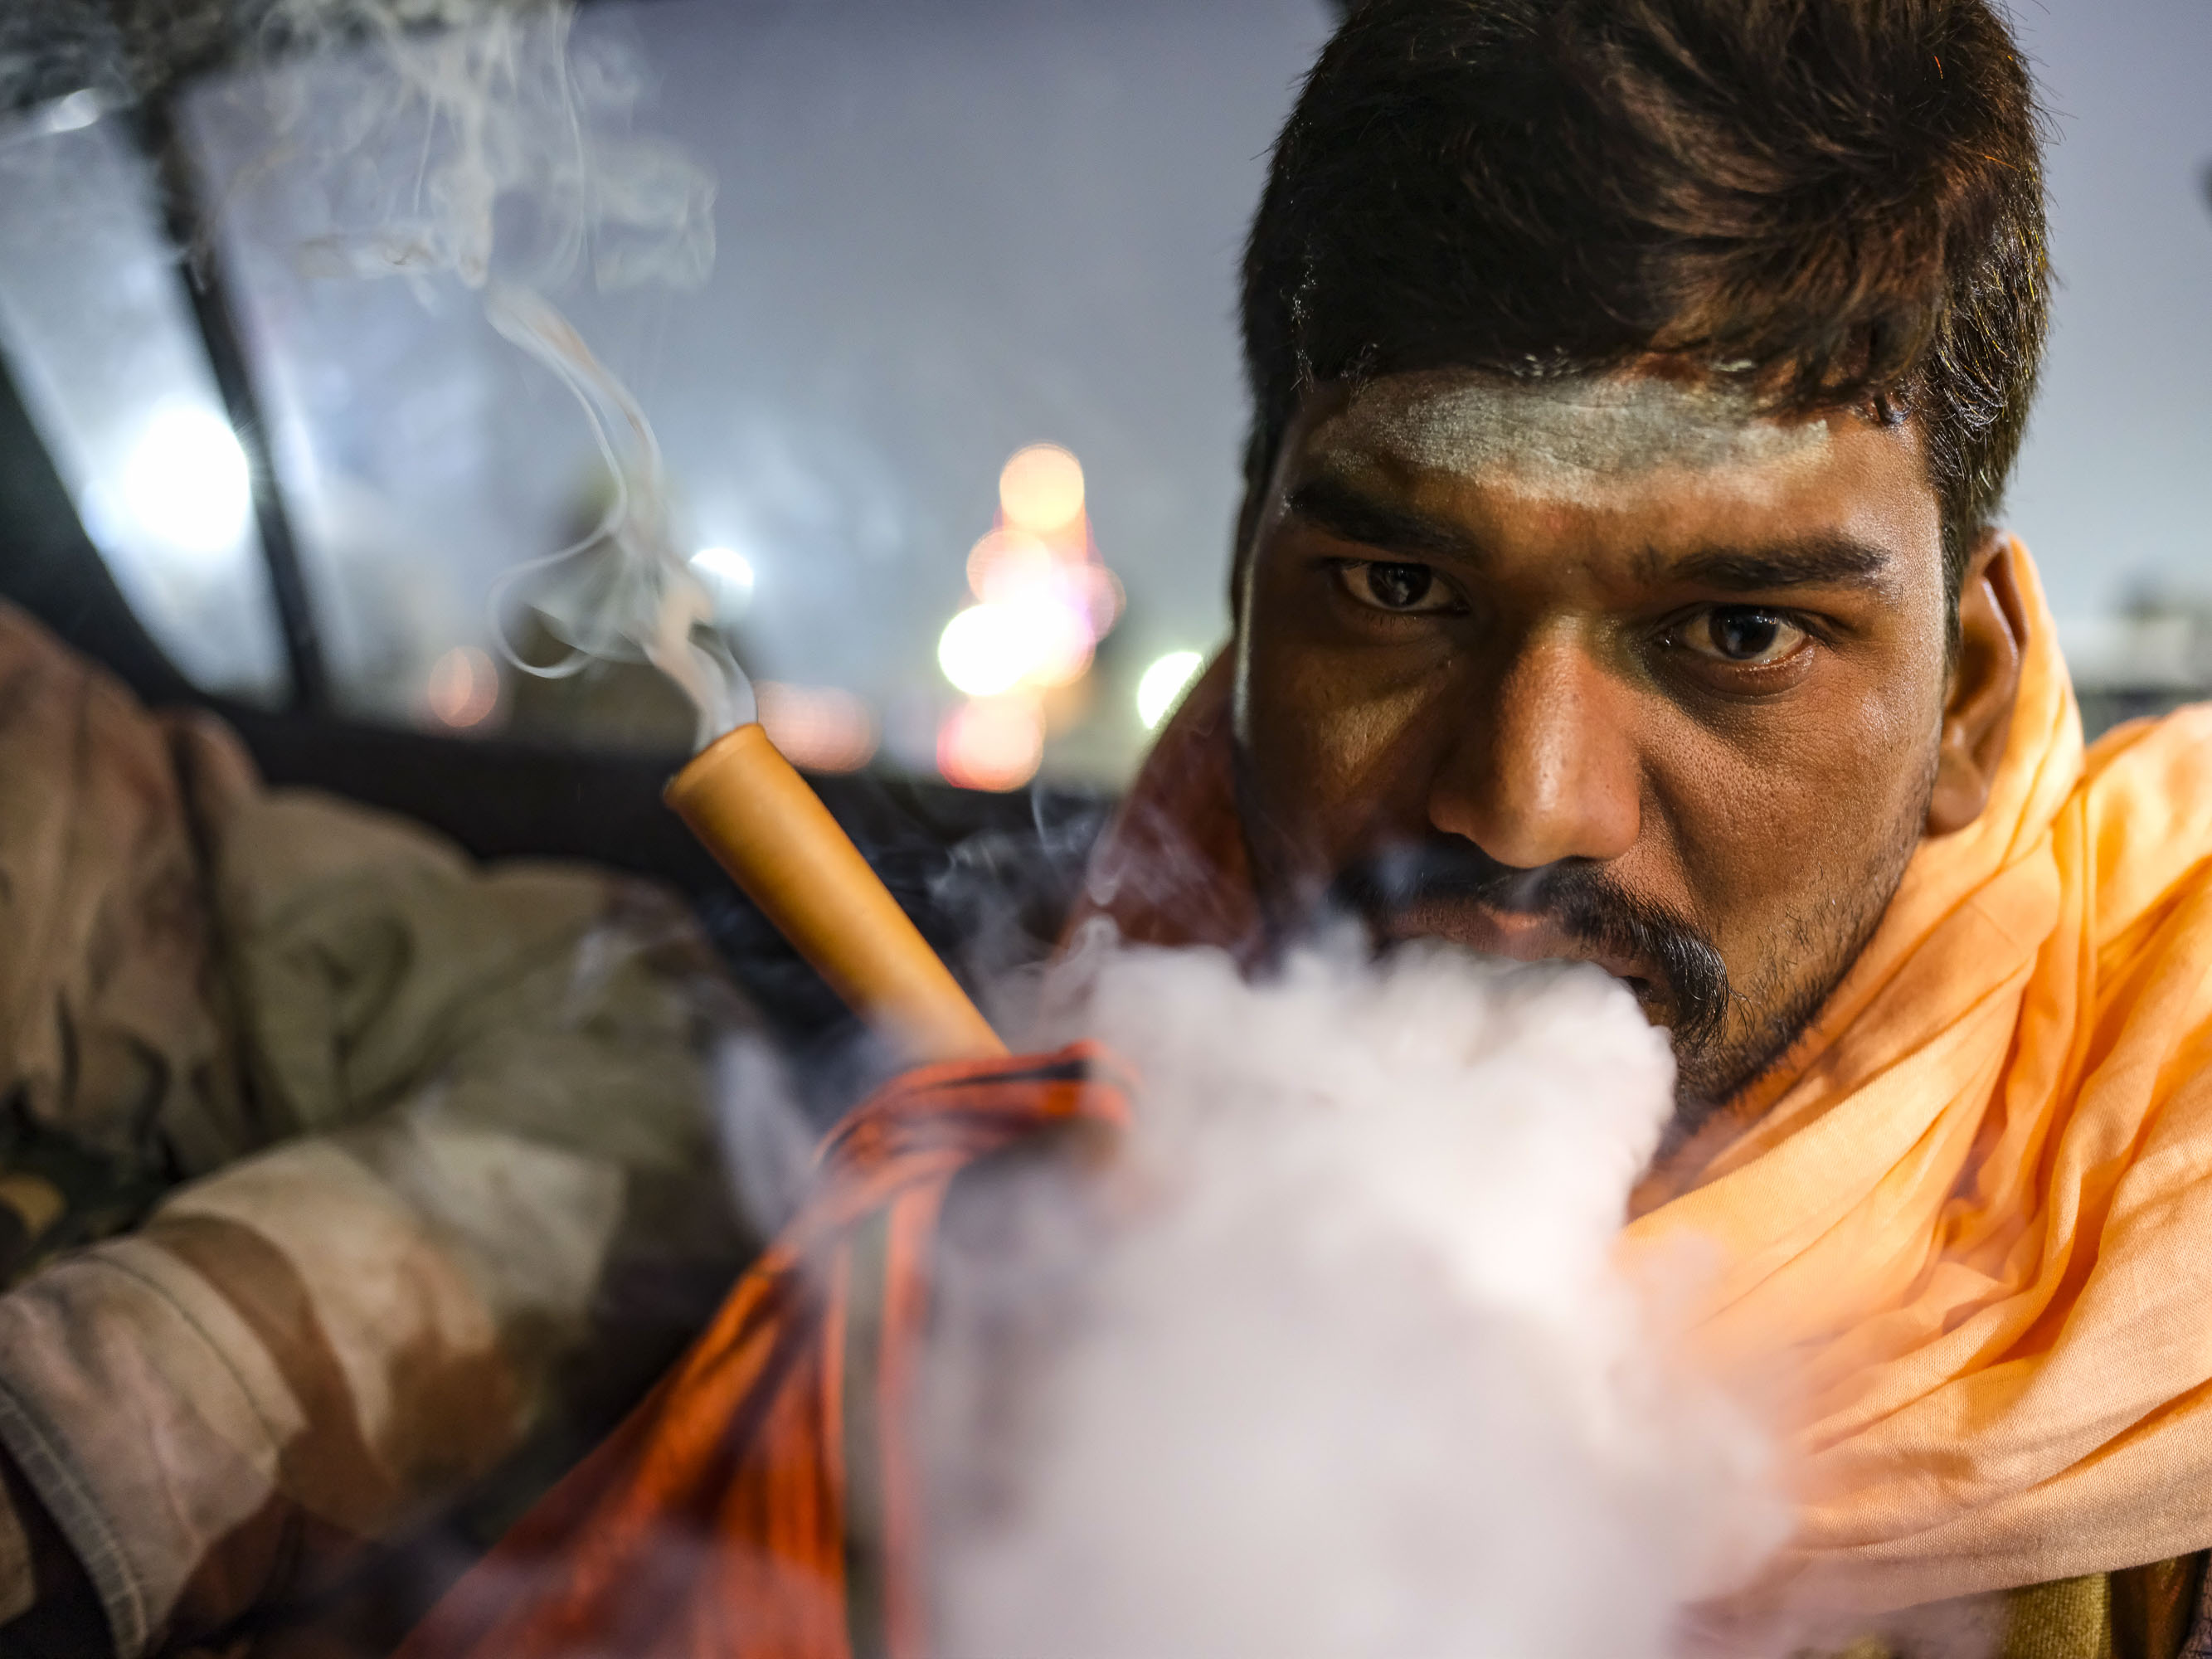 ganja smoke smoking man in car night pilgrims Kumbh mela 2019 India Allahabad Prayagraj Ardh hindu religious Festival event rivers photographer jose jeuland photography